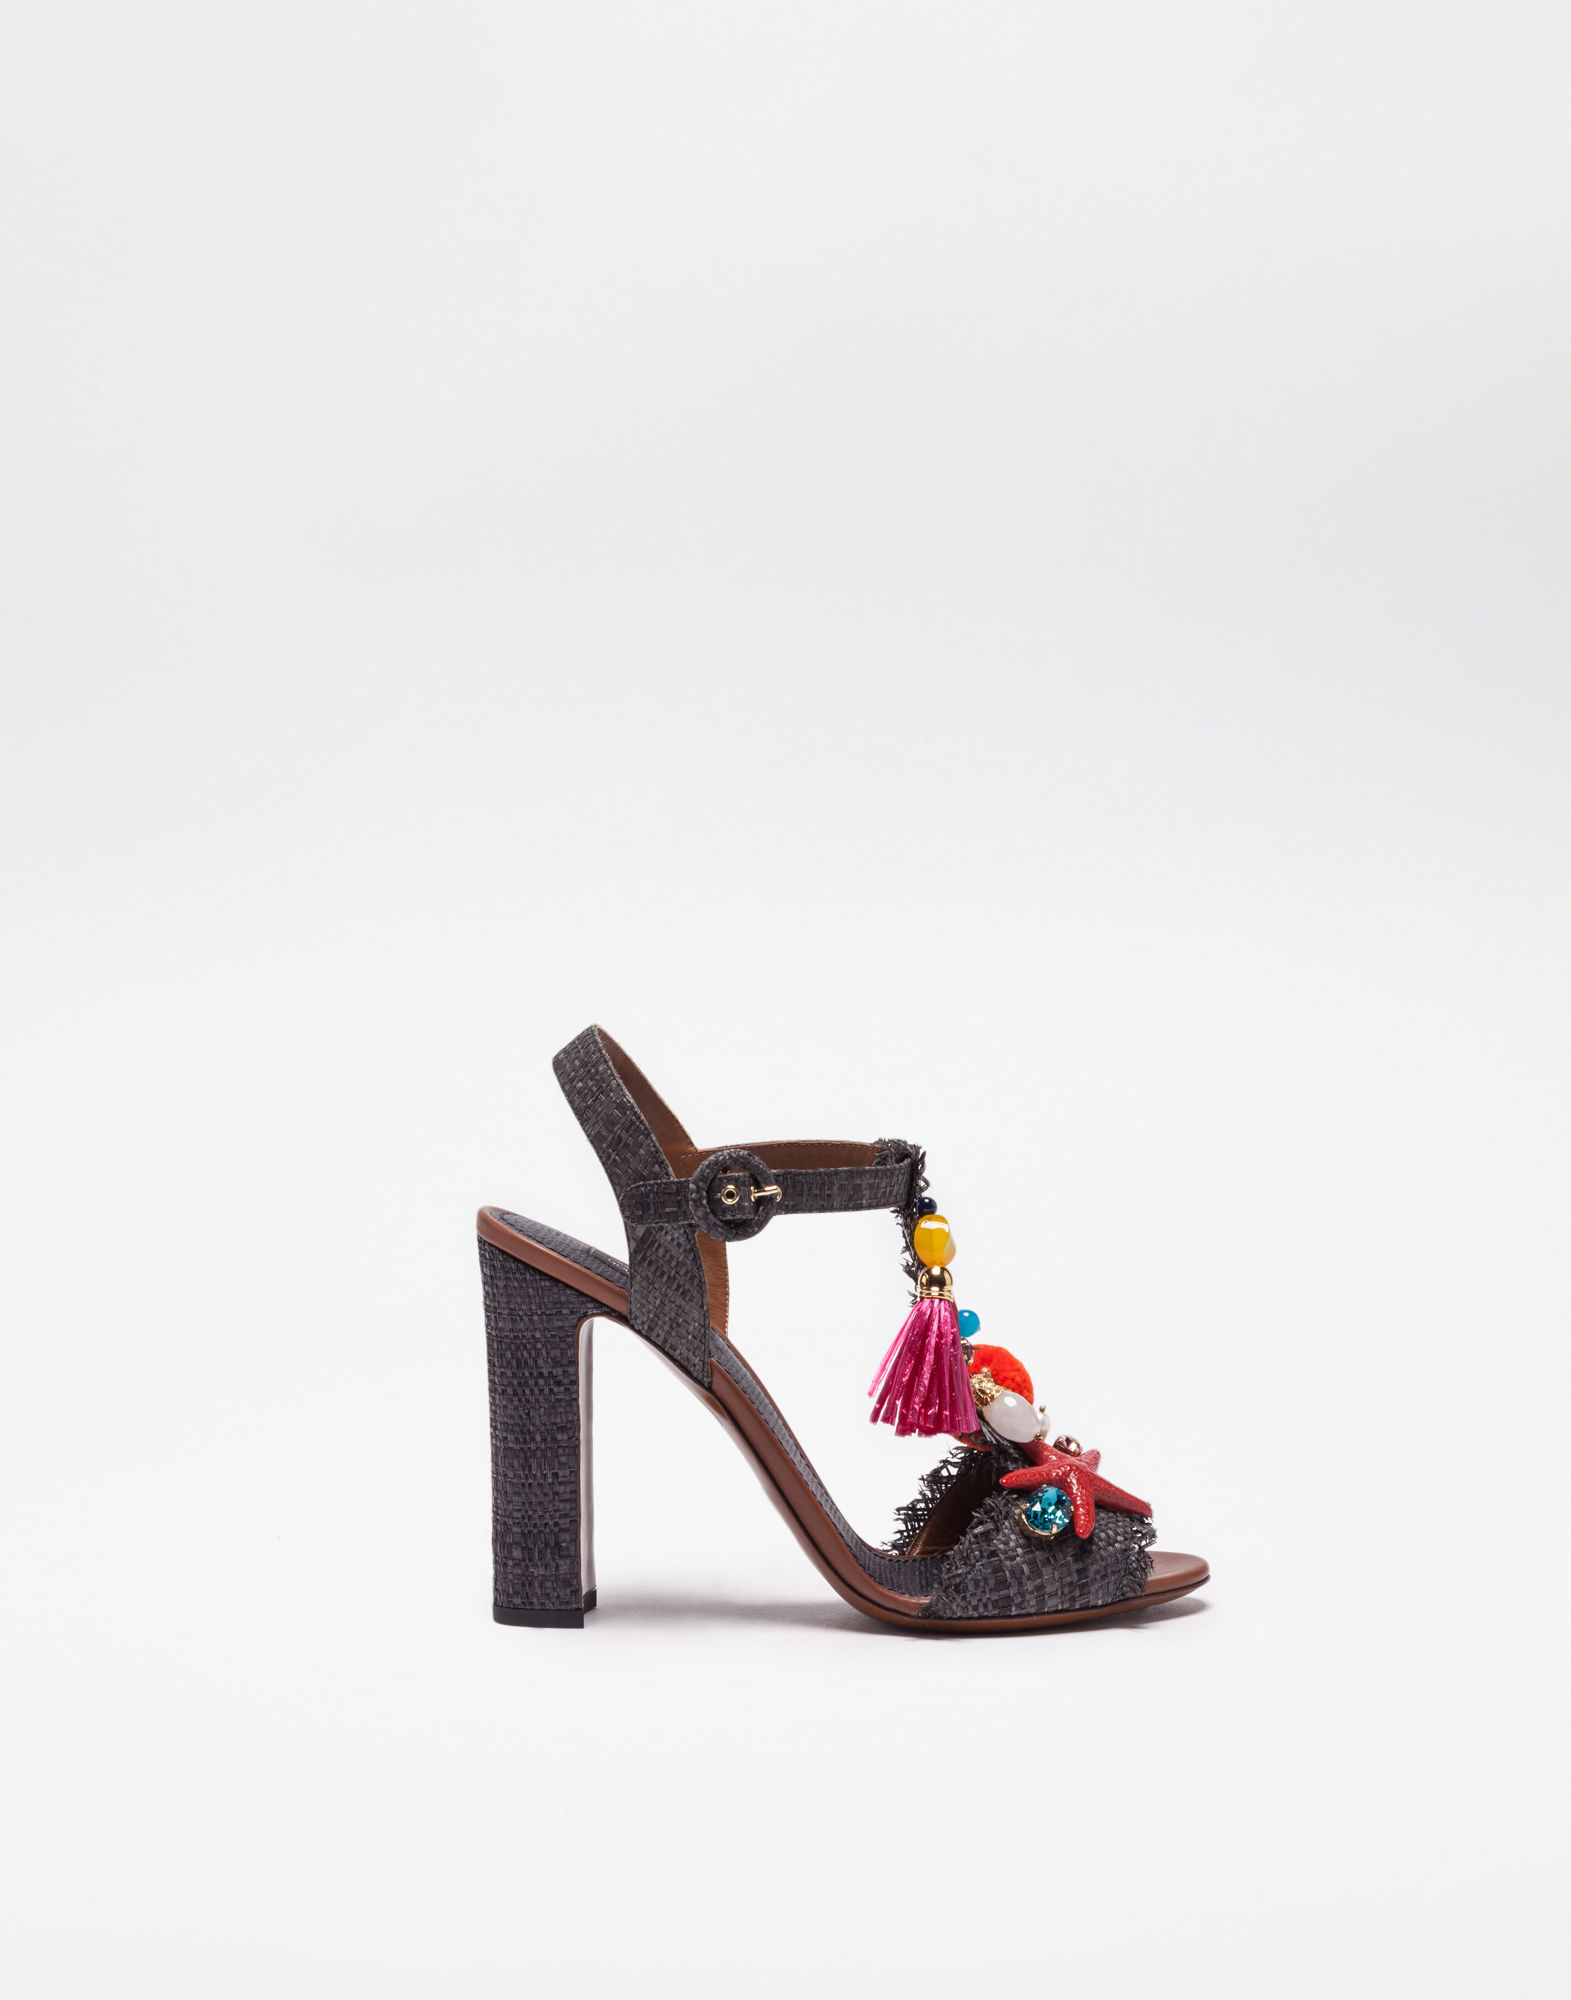 Dolce & Gabbana Straw Sandals With Applications In Black